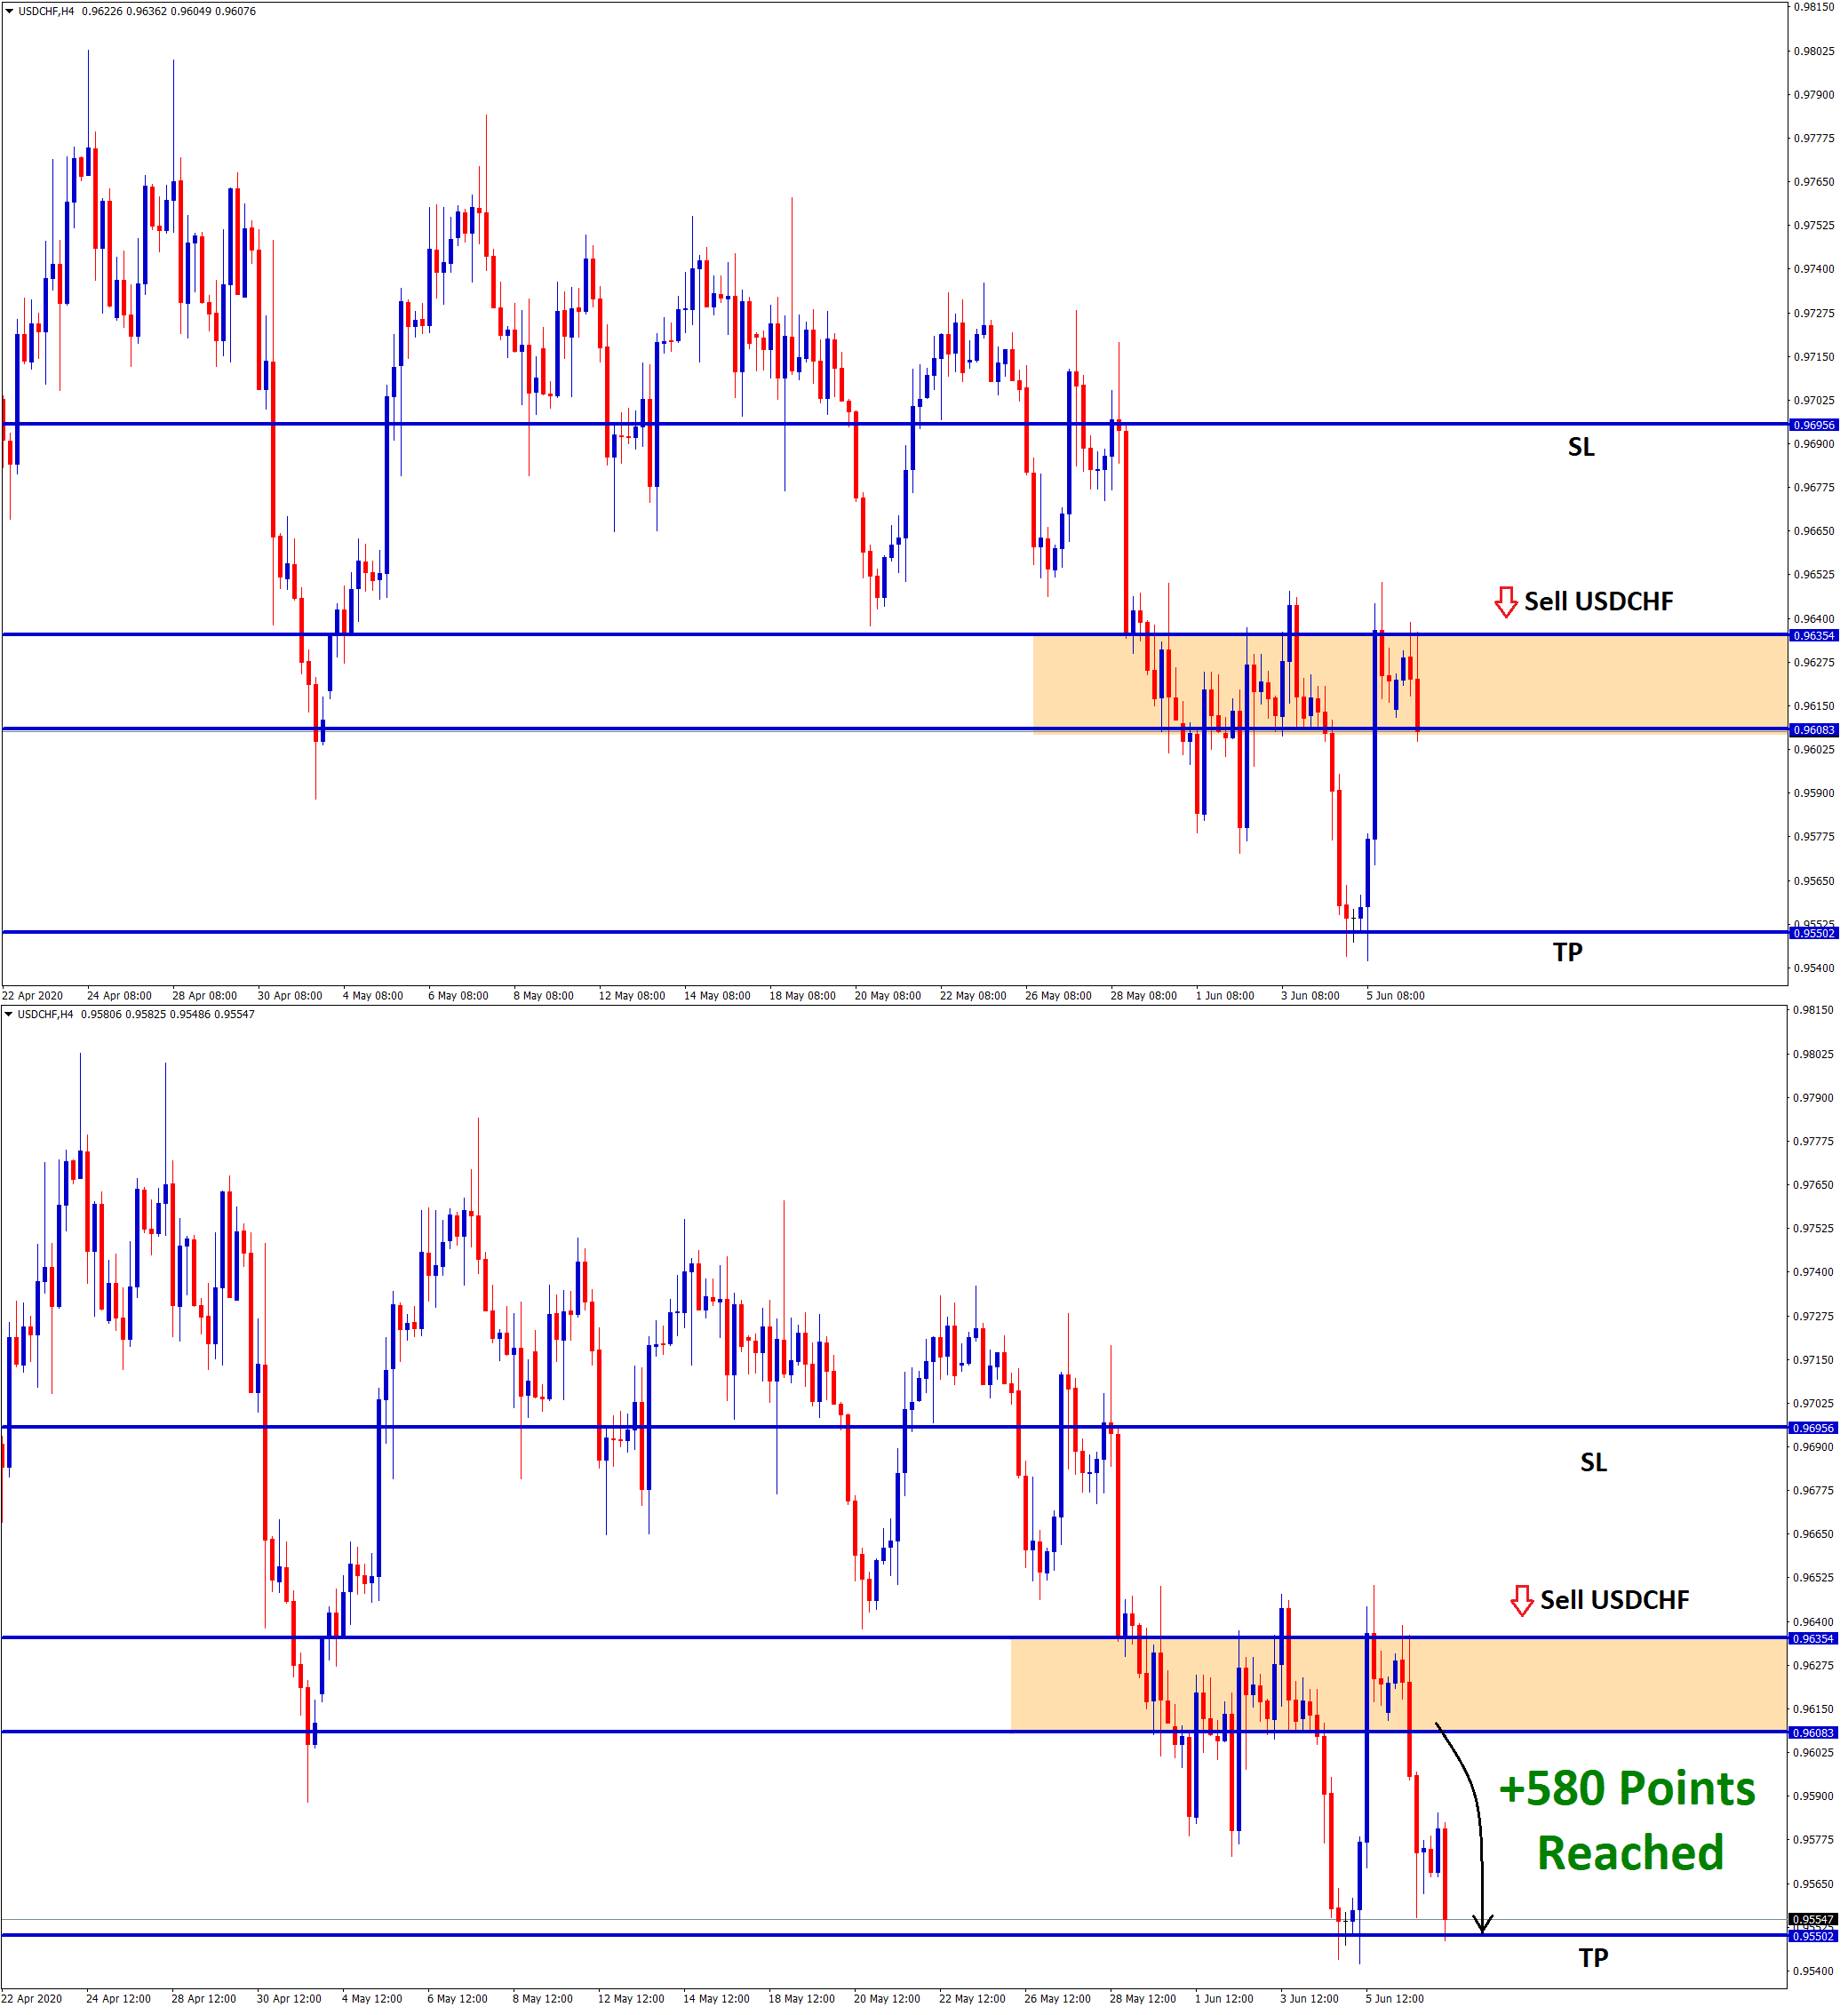 usdchf hits 580 points profit in sell trade signal